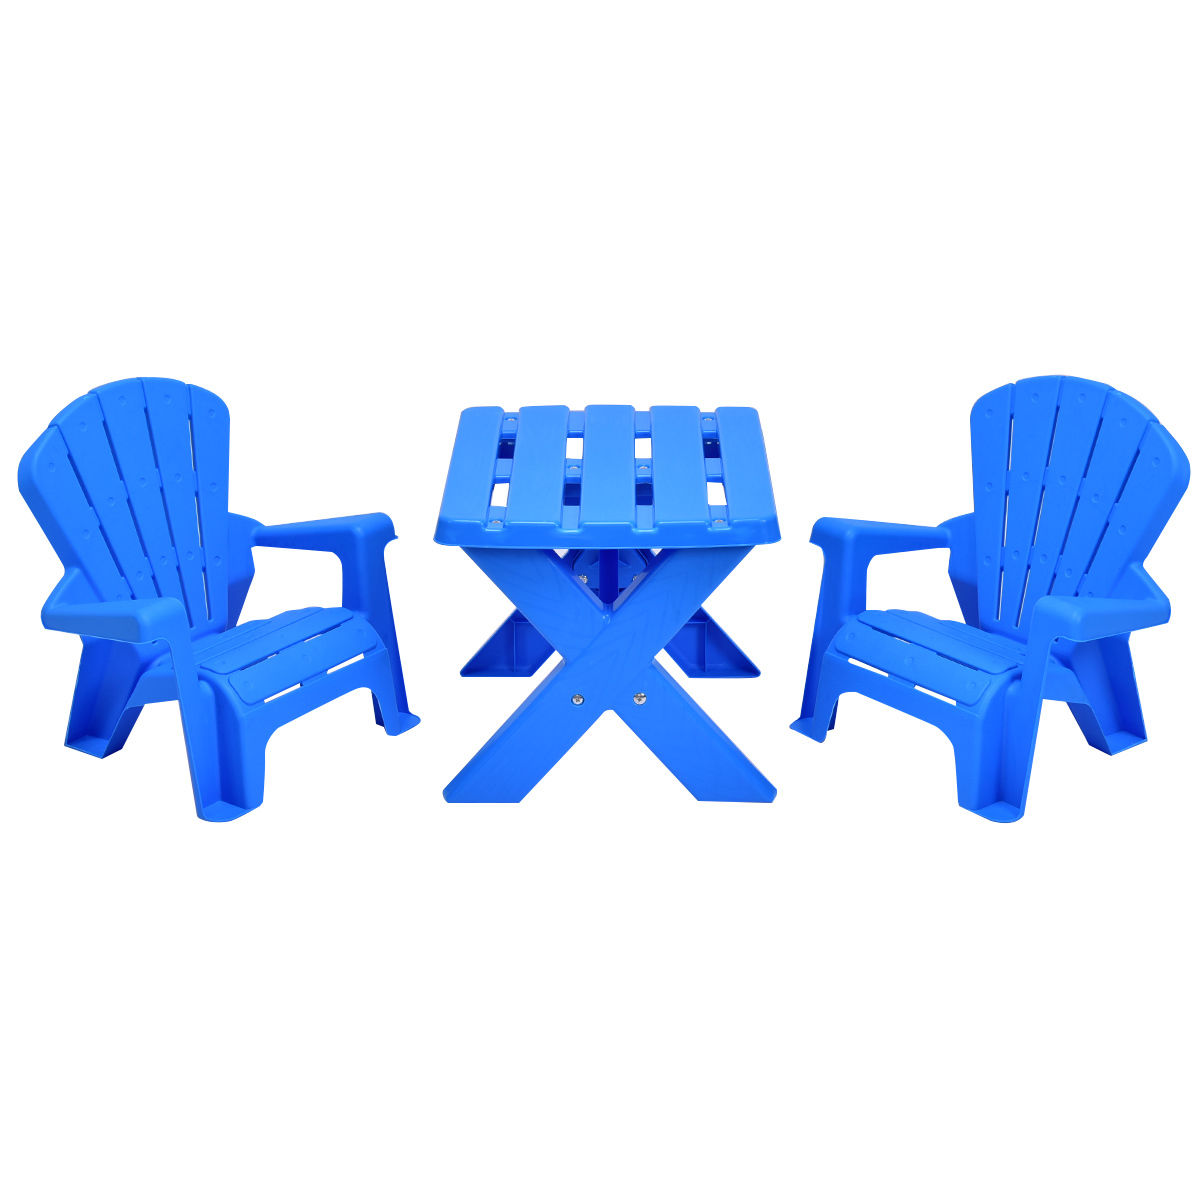 GHP Blue Plastic 3-Piece Table and Chairs Set Kids Indoor Outdoor Furniture Play